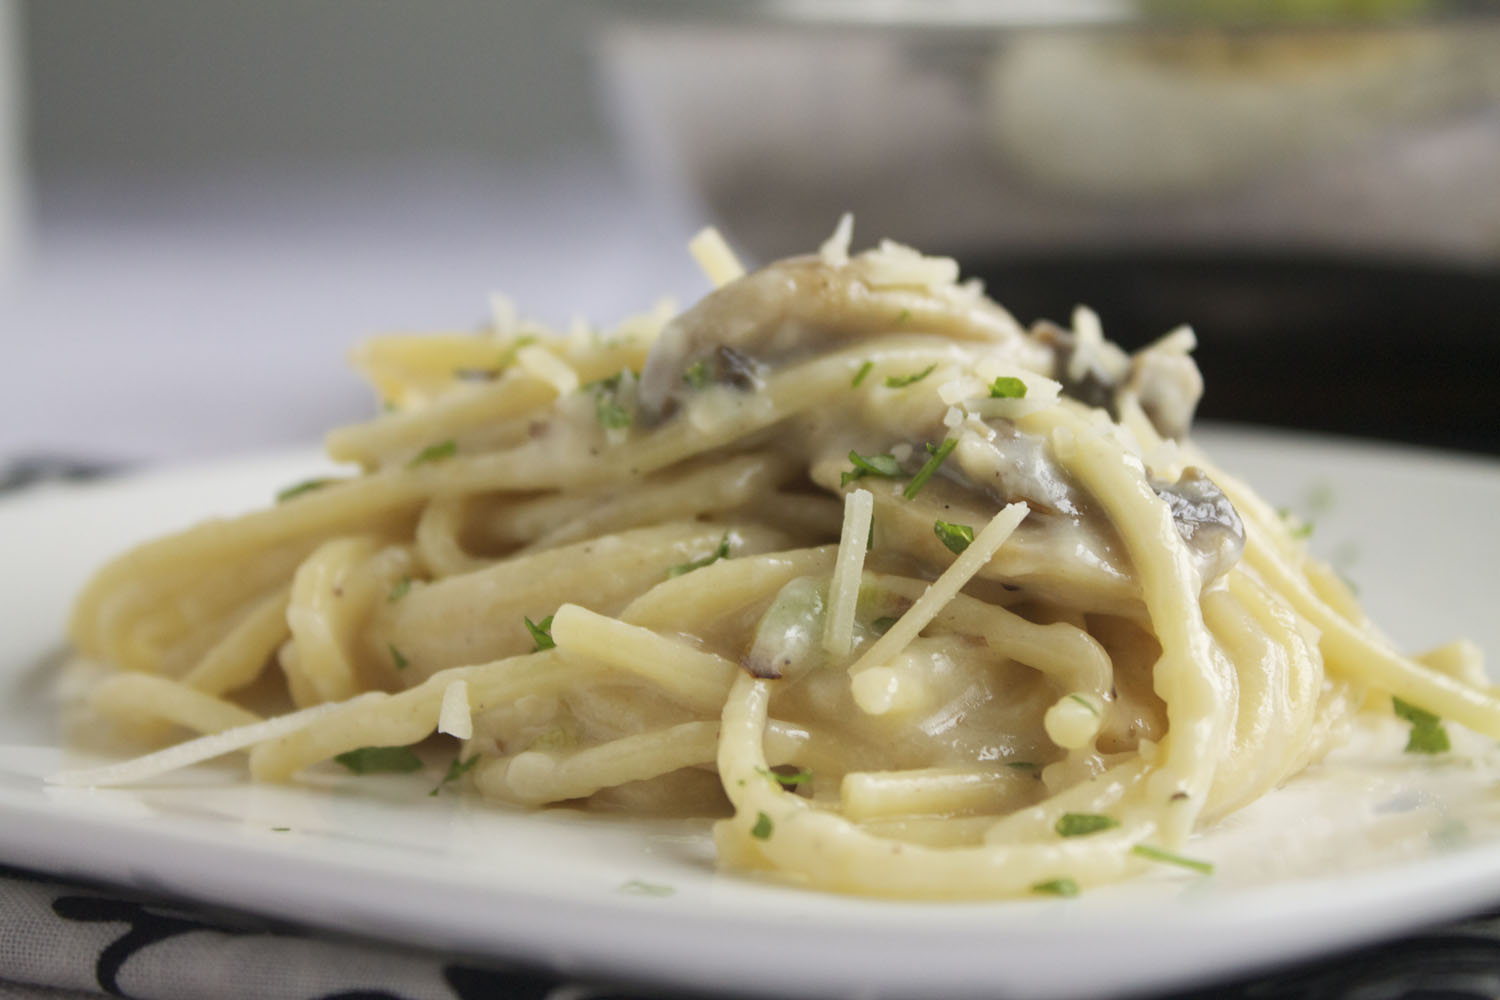 Creamy pasta sauce recipe with cream